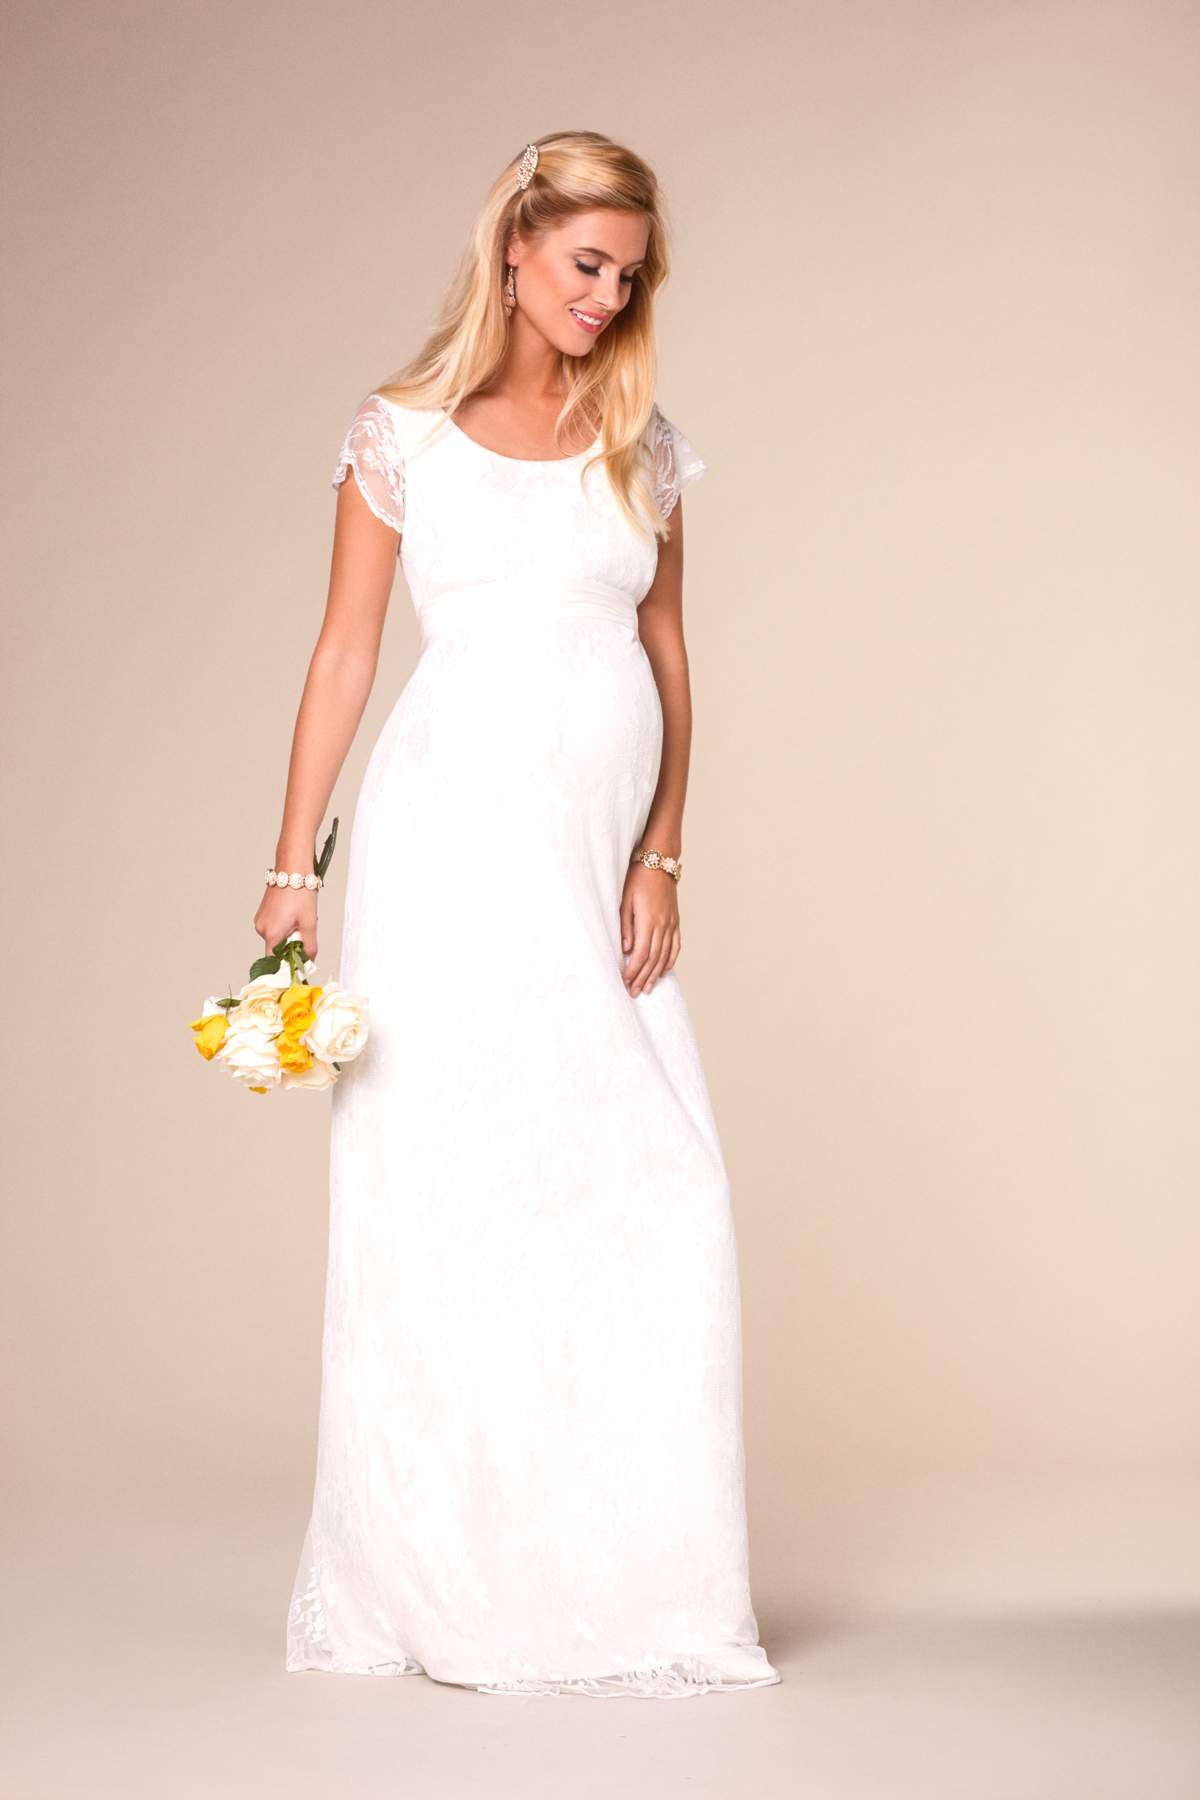 ANDIL-S1-April-Nursing-Gown-Long-Ivory